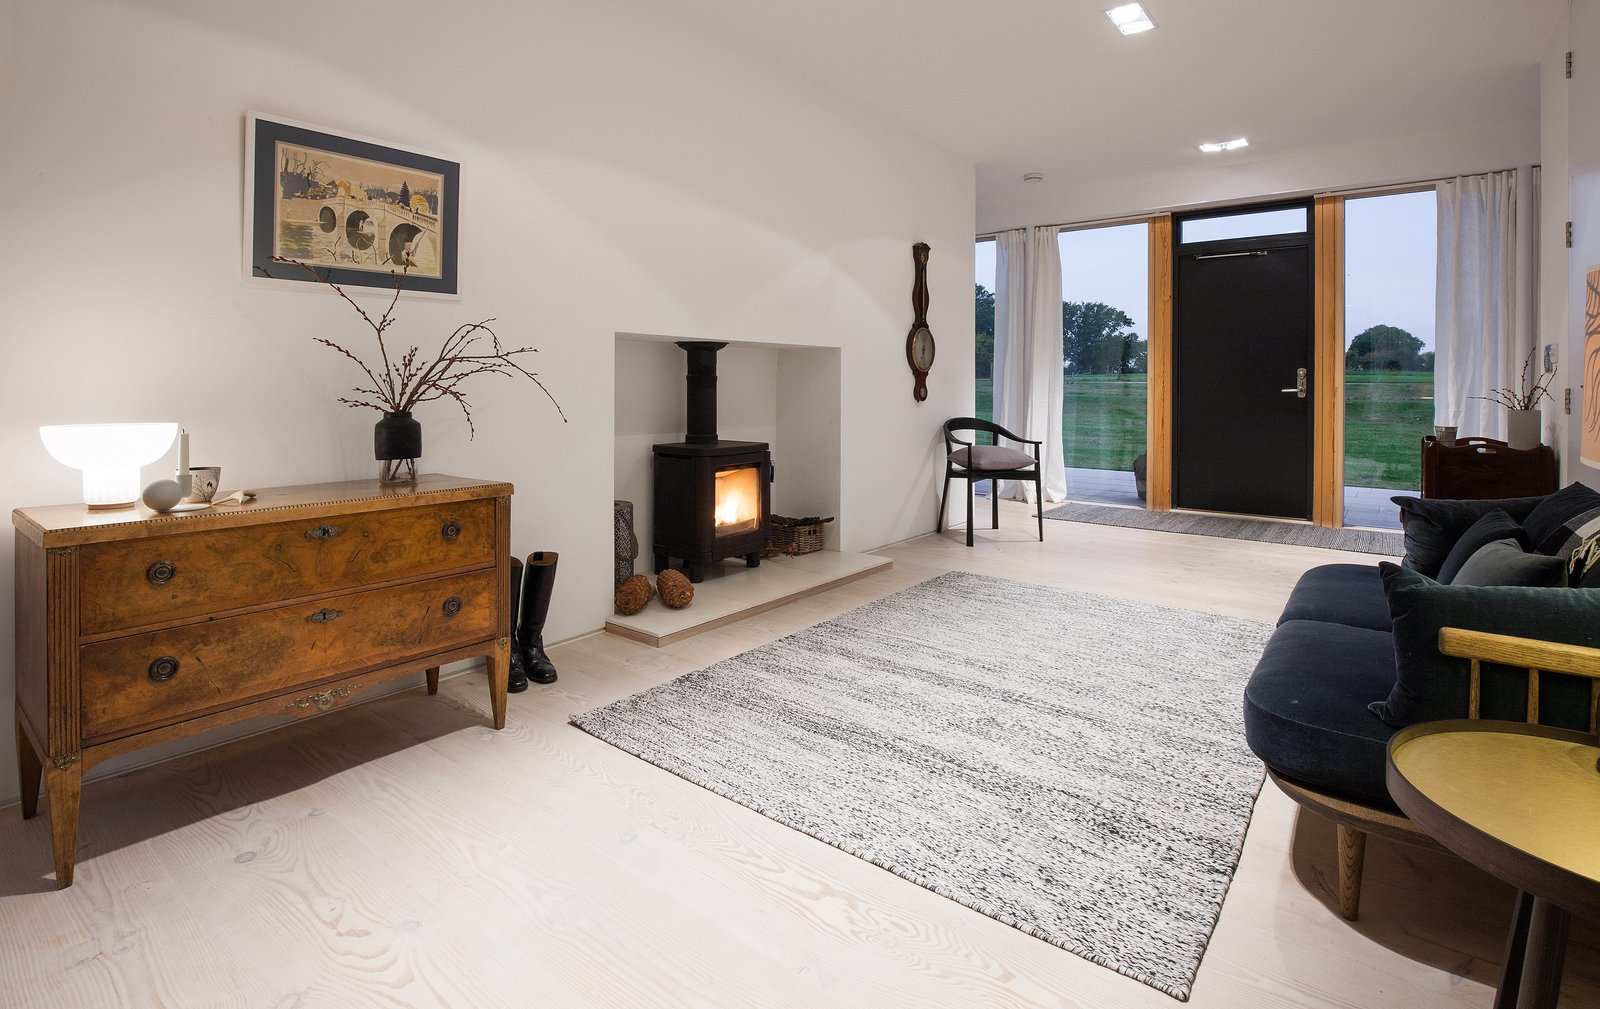 Living Room, Wood Burning Fireplace, Light Hardwood Floor, Rug Floor, Storage, End Tables, Sofa, Chair, Table Lighting, and Recessed Lighting A sitting area with a stove creates a cozy sense of  Photo 4 of 11 in A Scandinavian-Style Pavilion in England Is Listed For $2.1M